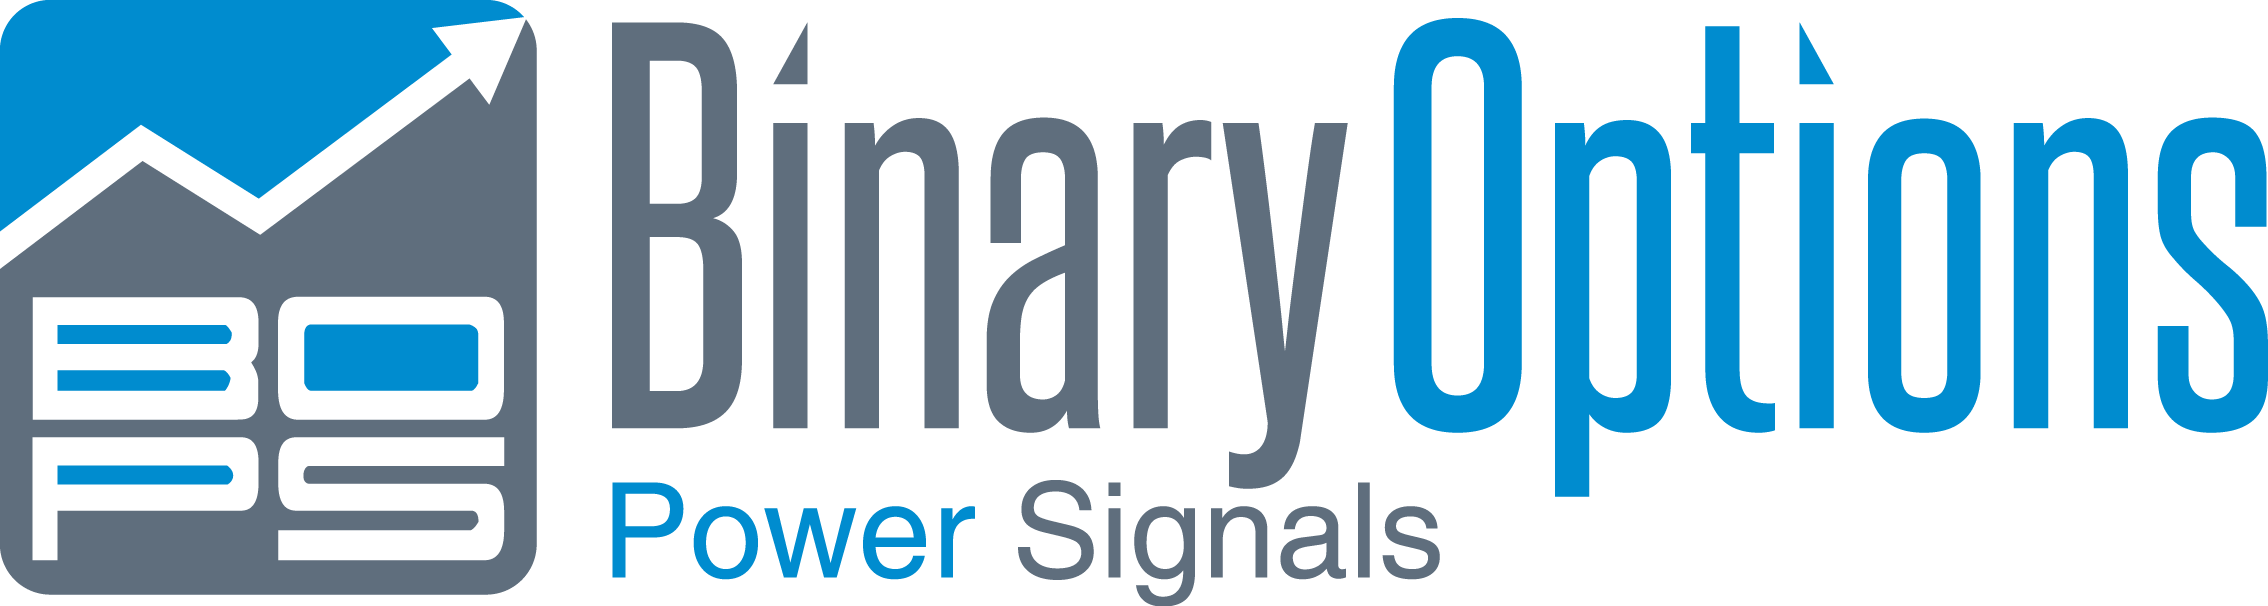 binary options hourly signals